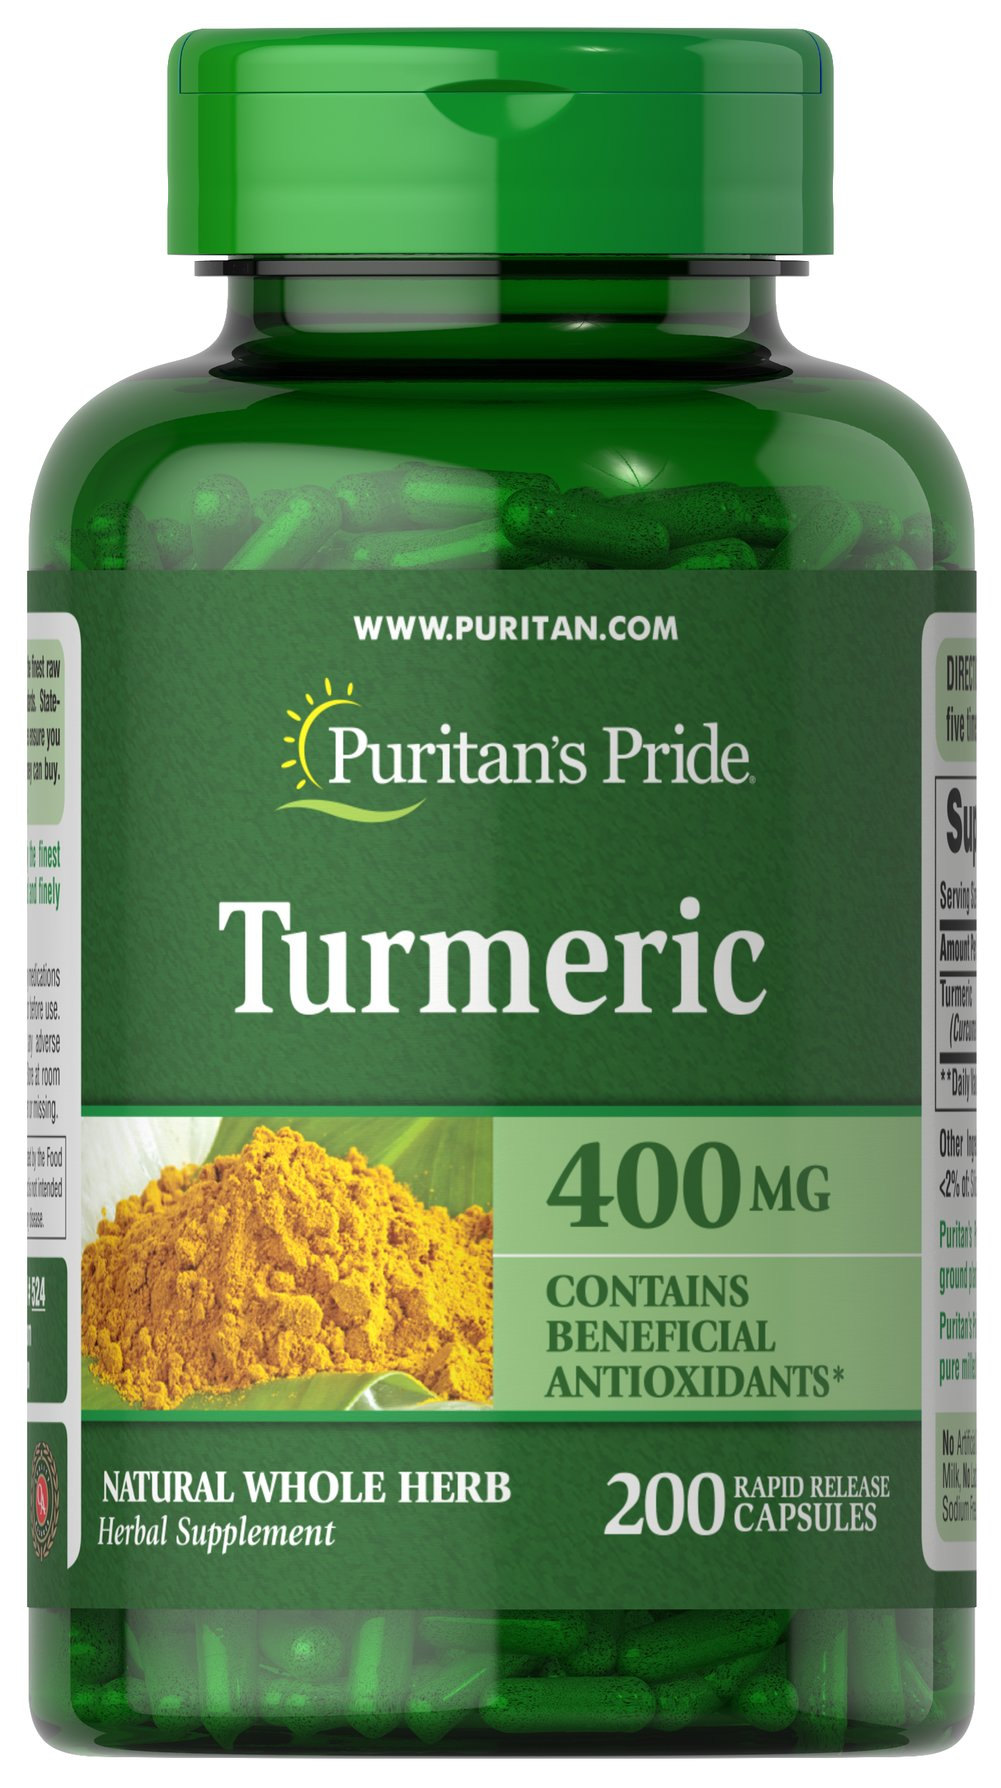 Turmeric 400 mg <p>Turmeric, a common spice used in curry dishes, has become a popular herbal supplement due to its potential antioxidant properties, which may contribute to brain health.** Available in 400 mg capsules, adults can take one capsule three to six times daily with meals. Capsules may be opened and prepared as a tea.</p>  200 Capsules 400 mg $4.79